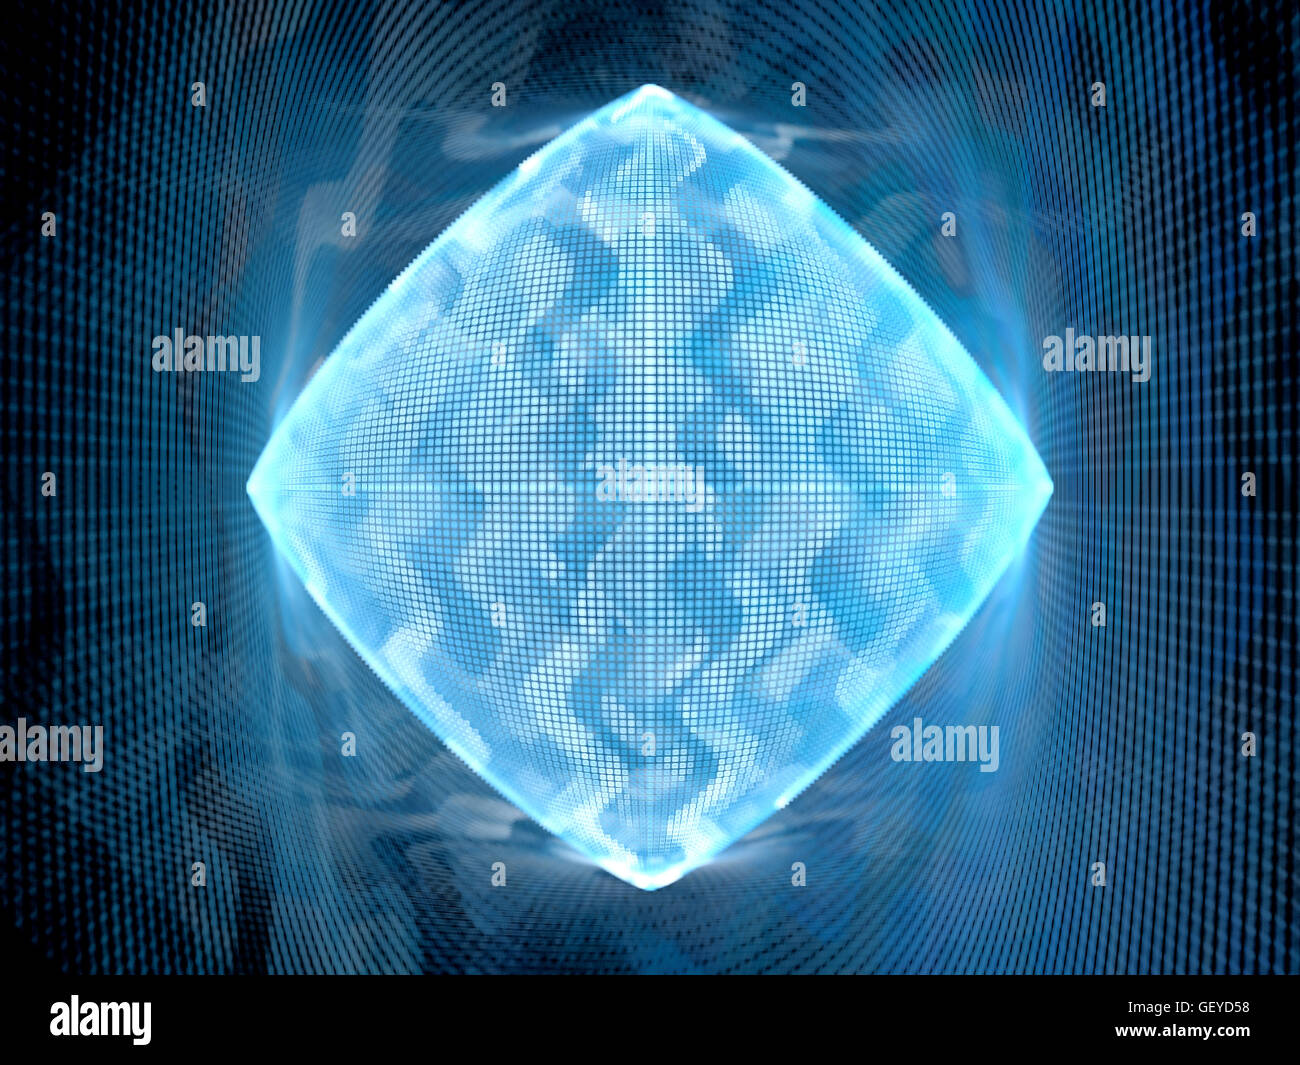 Blue glowing big data system, computer generated abstract background - Stock Image